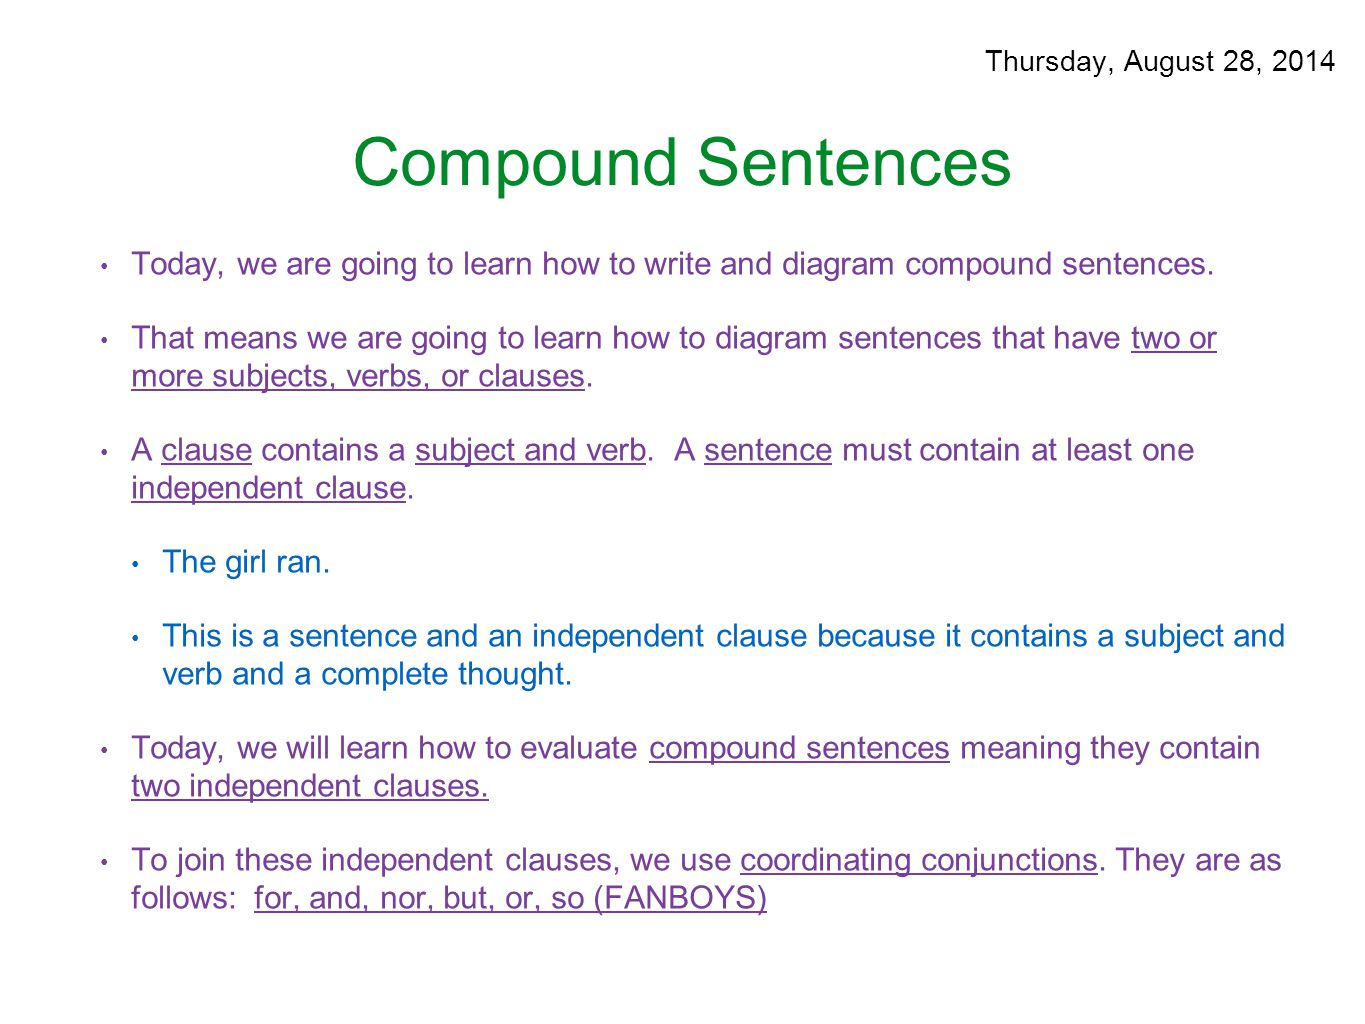 Parts of speech august 25 29 ppt download thursday august 28 2014 compound sentences today we are going to learn ccuart Choice Image